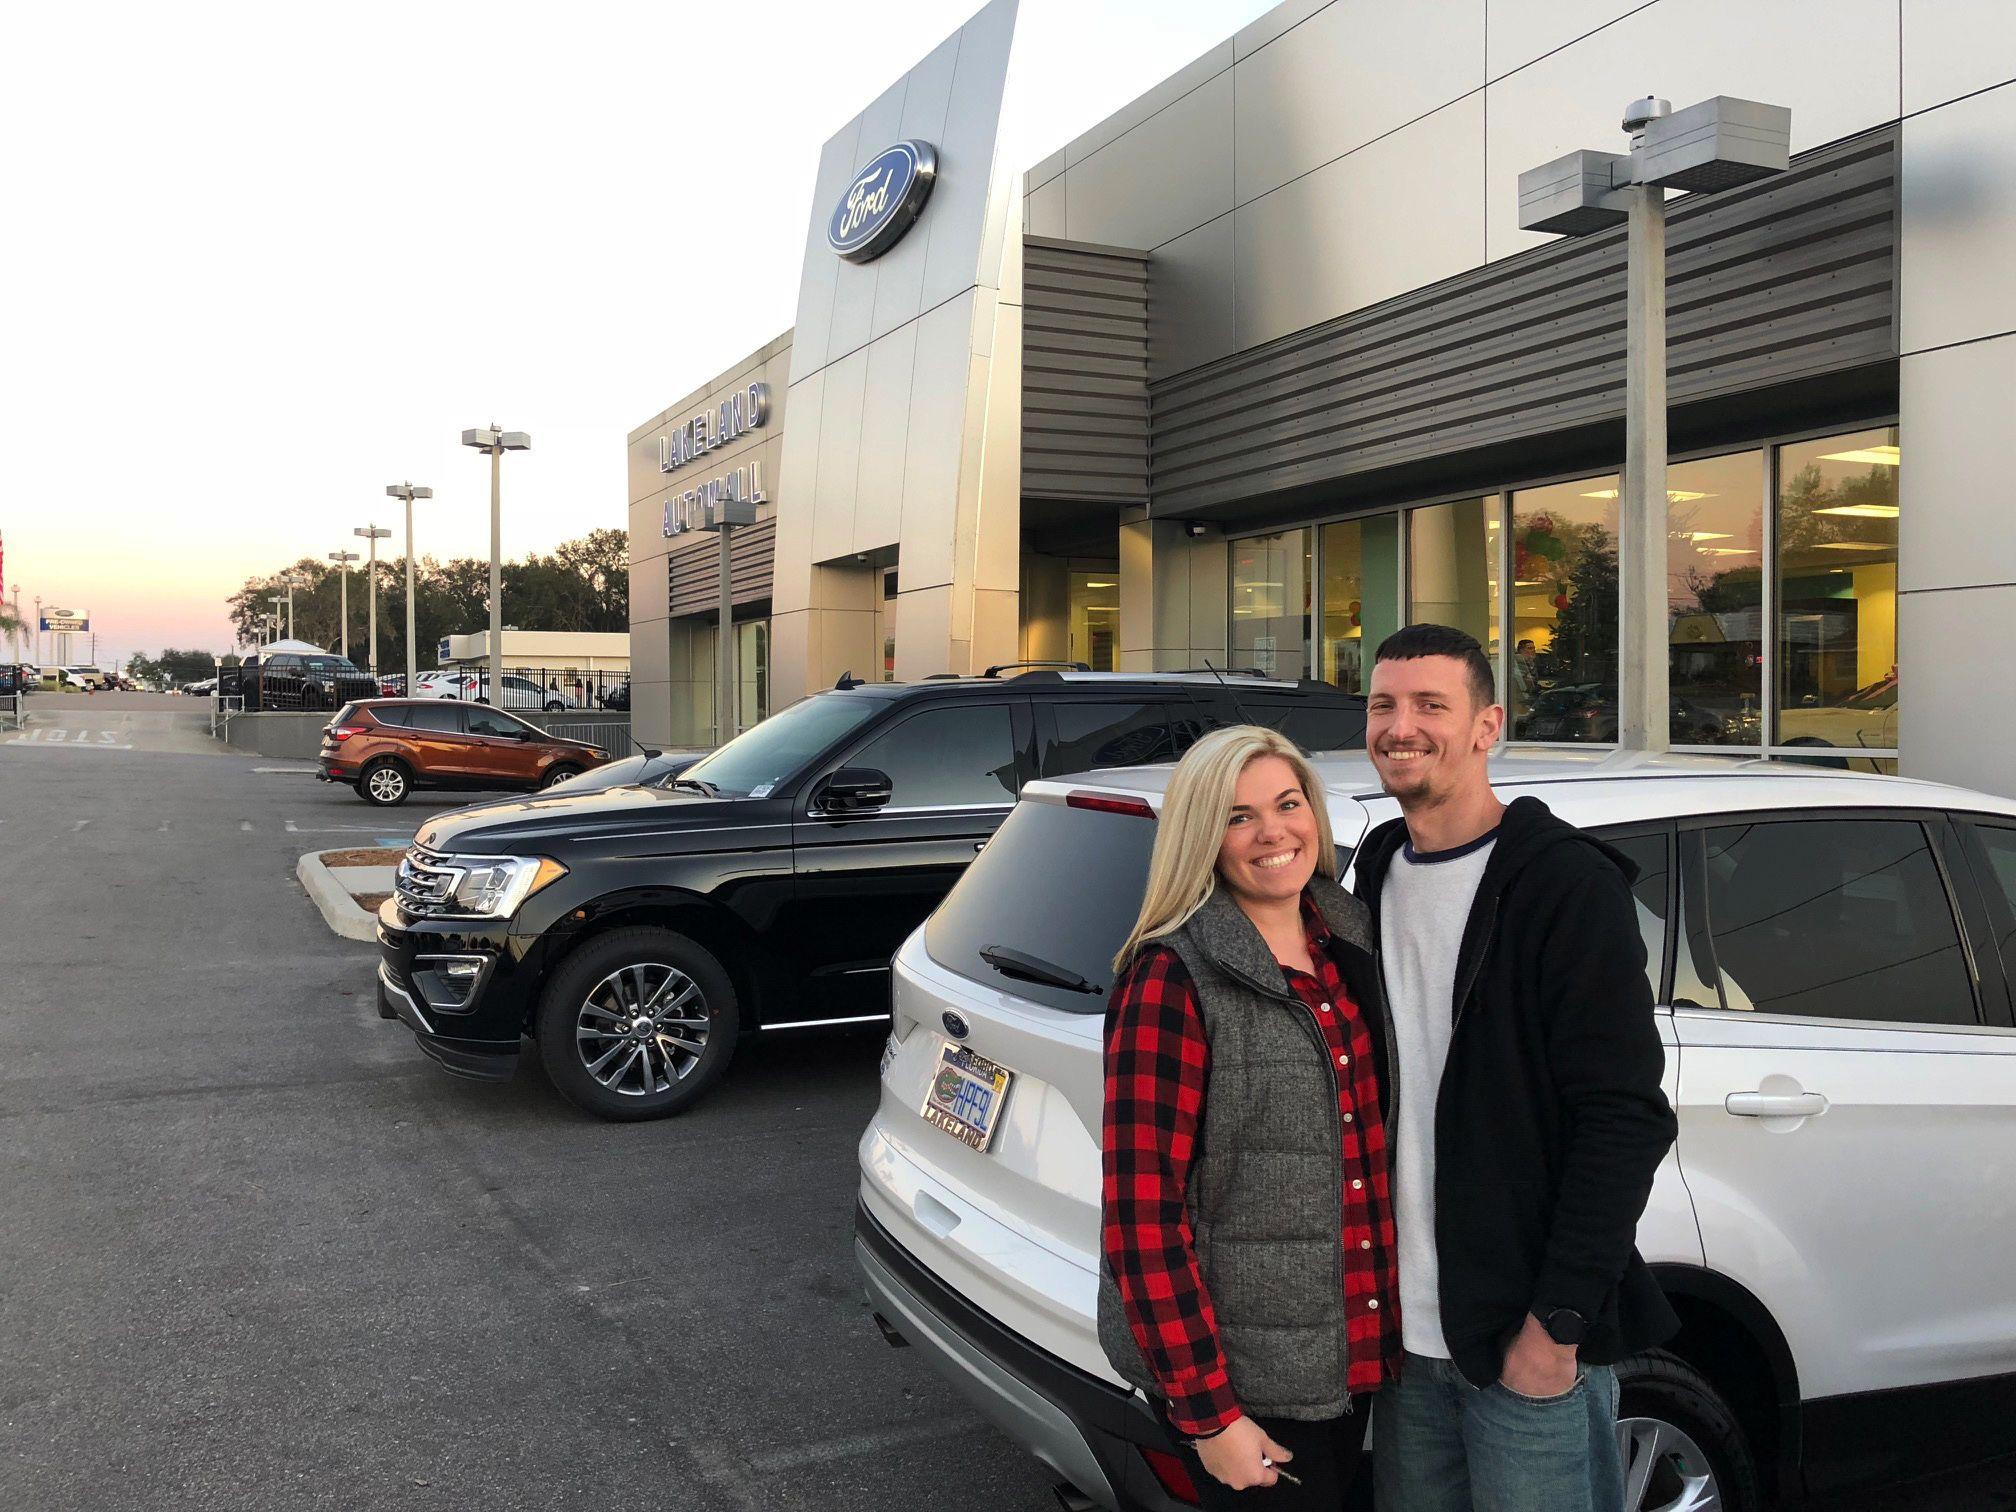 Mrs Ashley Martin Came Into Lakeland Ford In The Hopes Of Finding